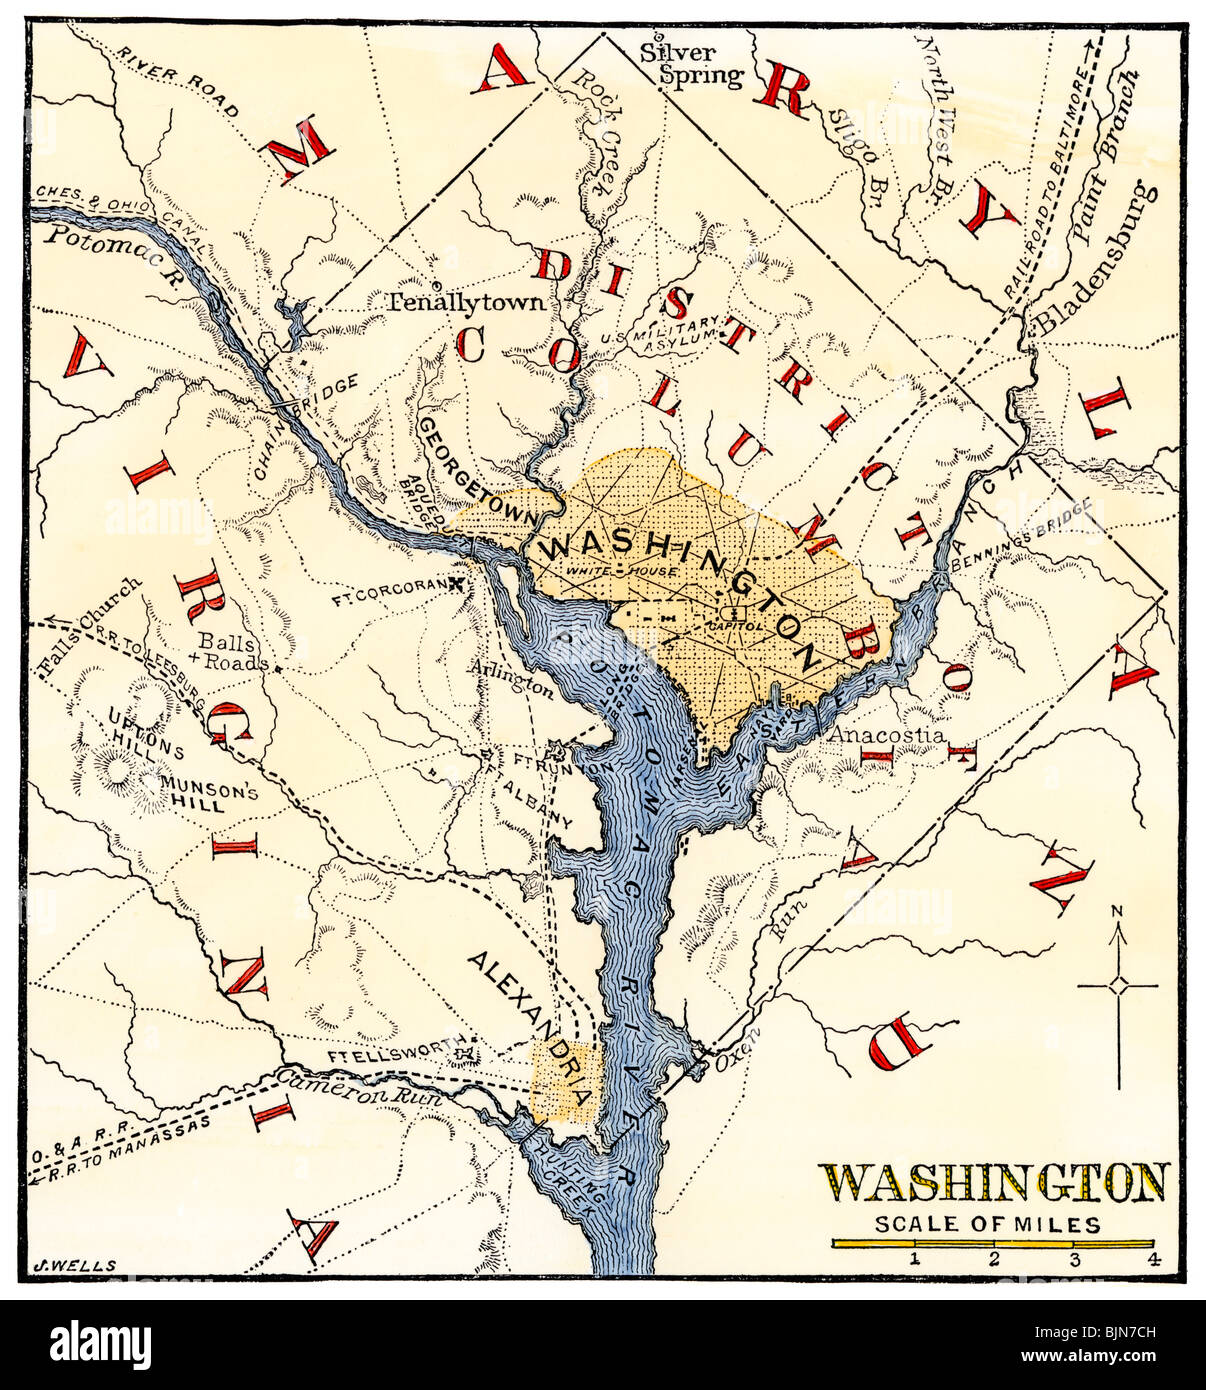 Map of the Washington DC vicinity at the outset of the Civil War. Hand-colored woodcut - Stock Image